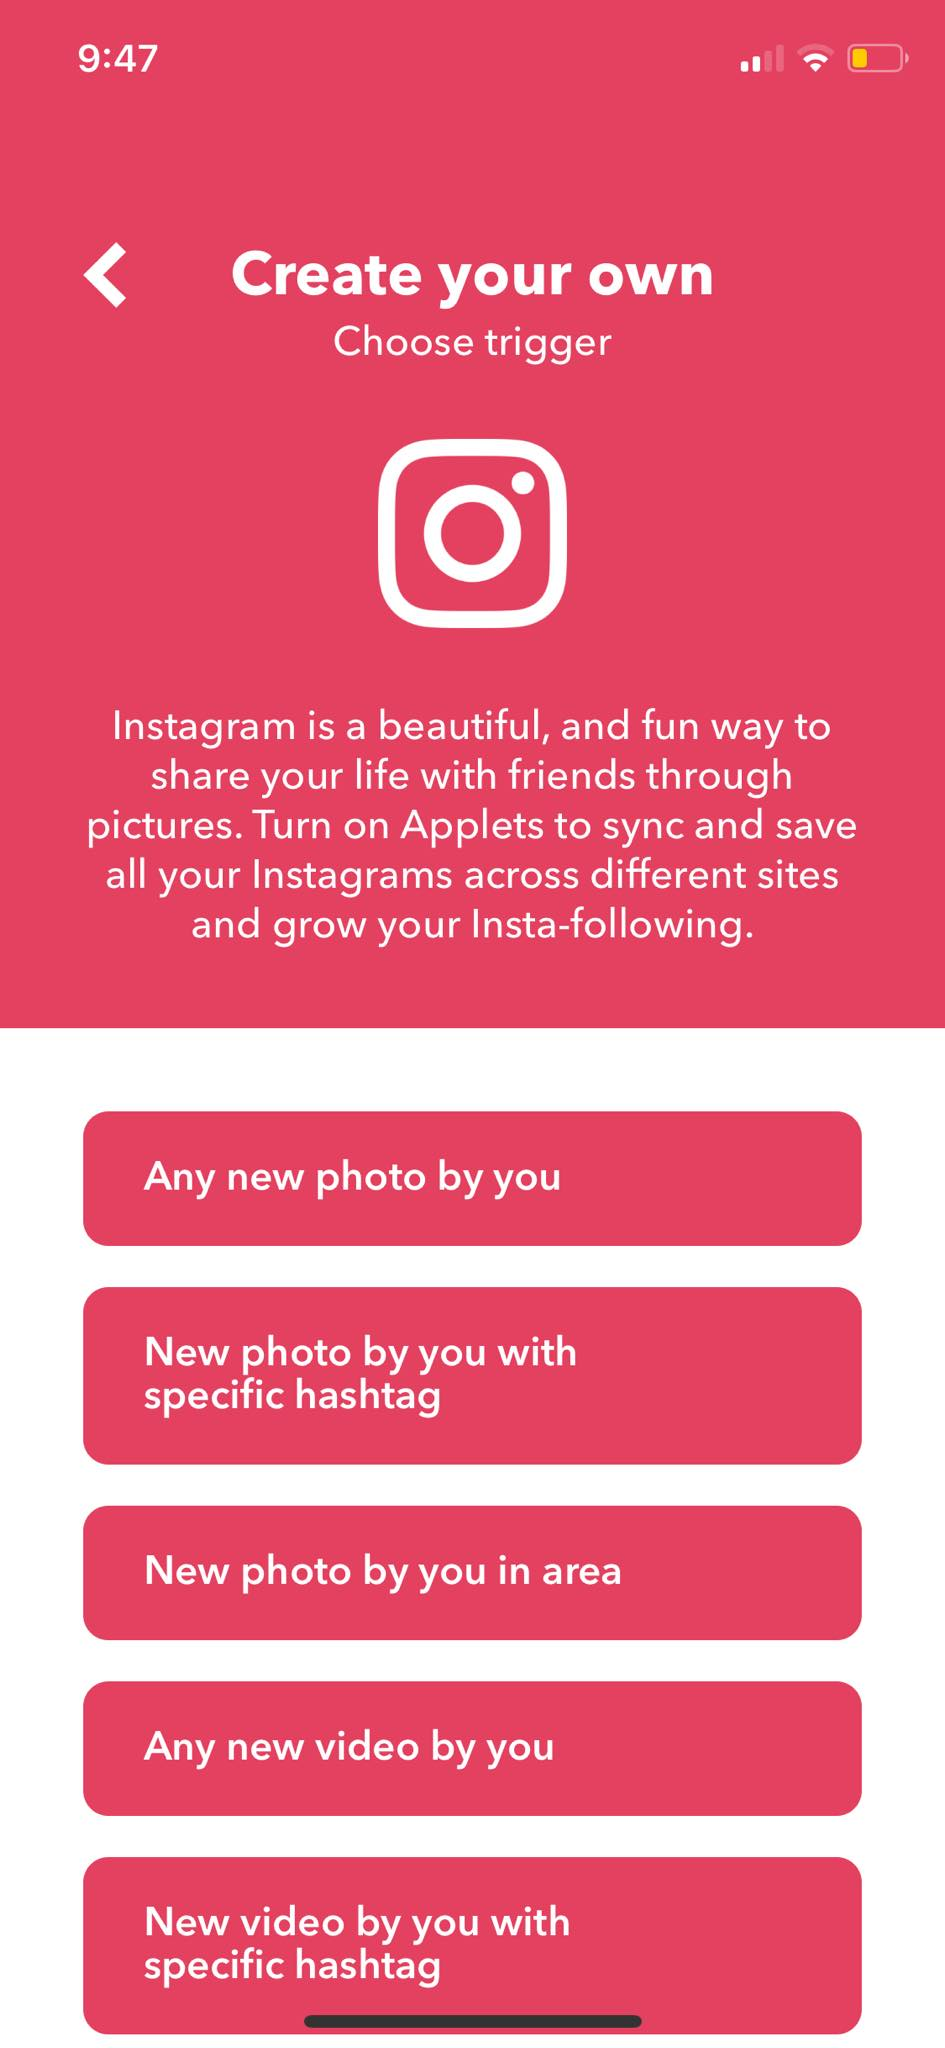 Instagram Trigger on iOS by IFTTT